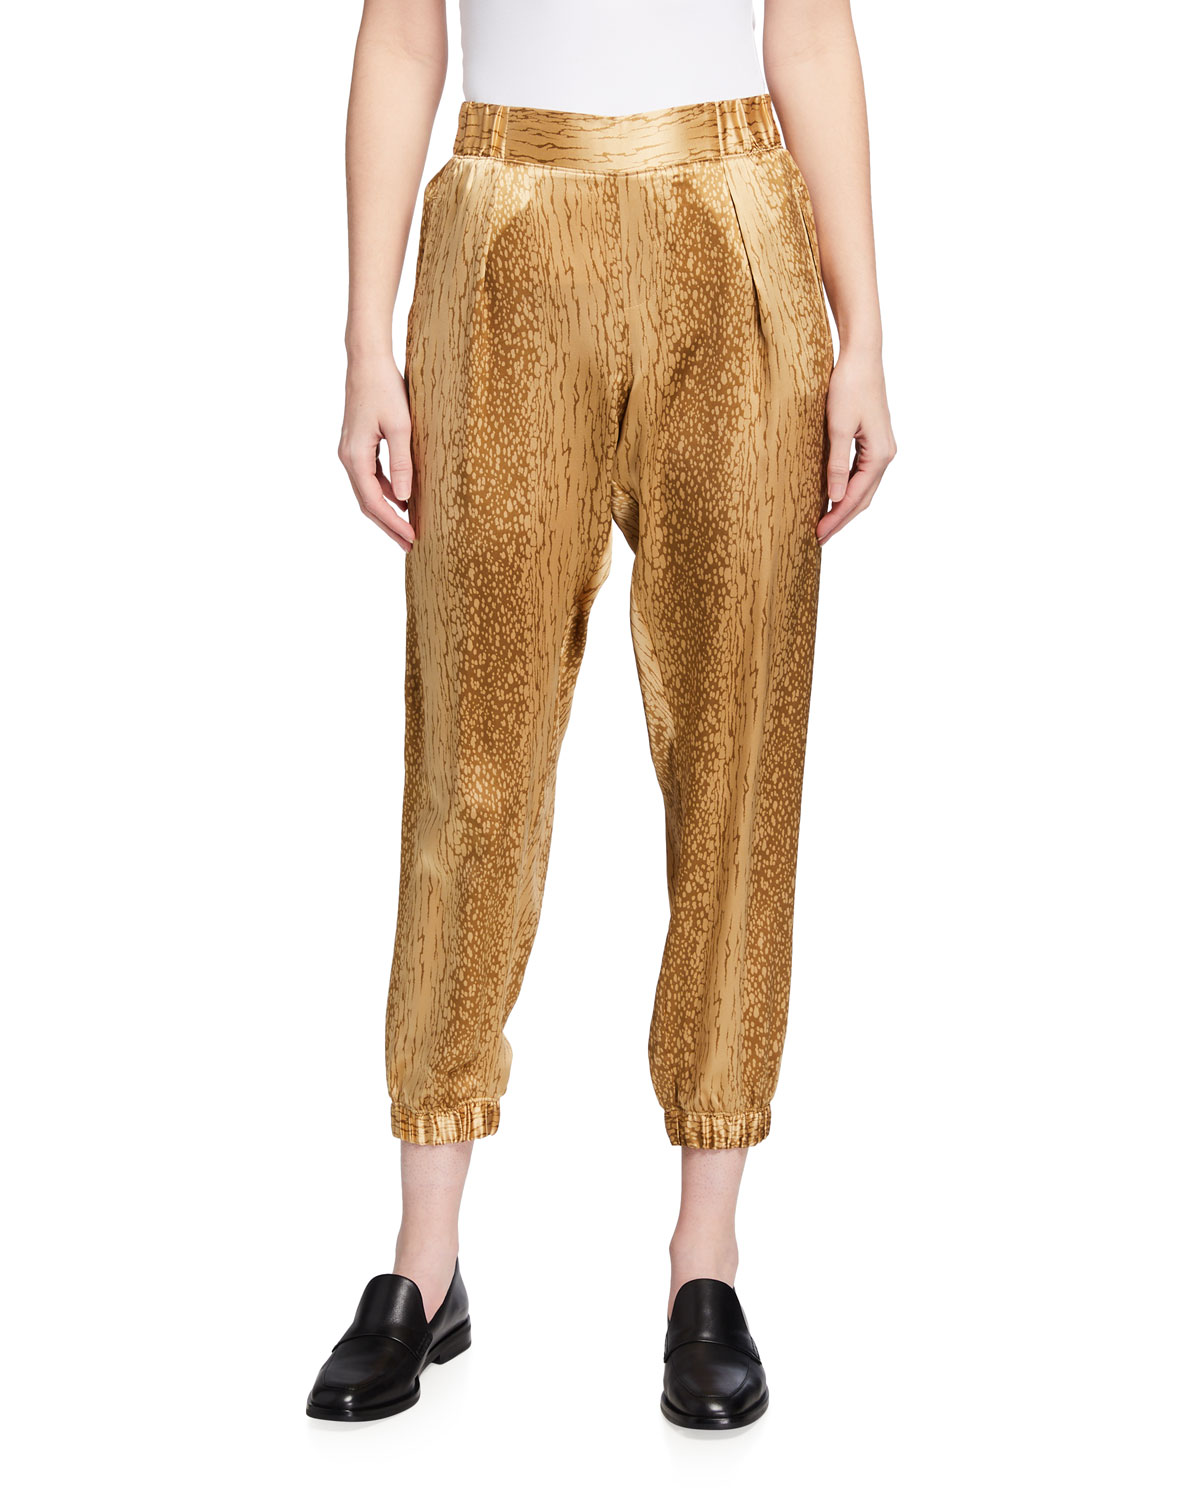 Atm Anthony Thomas Melillo Cropped pants CRACKED PAINT CHARMEUSE PULL-ON PANTS